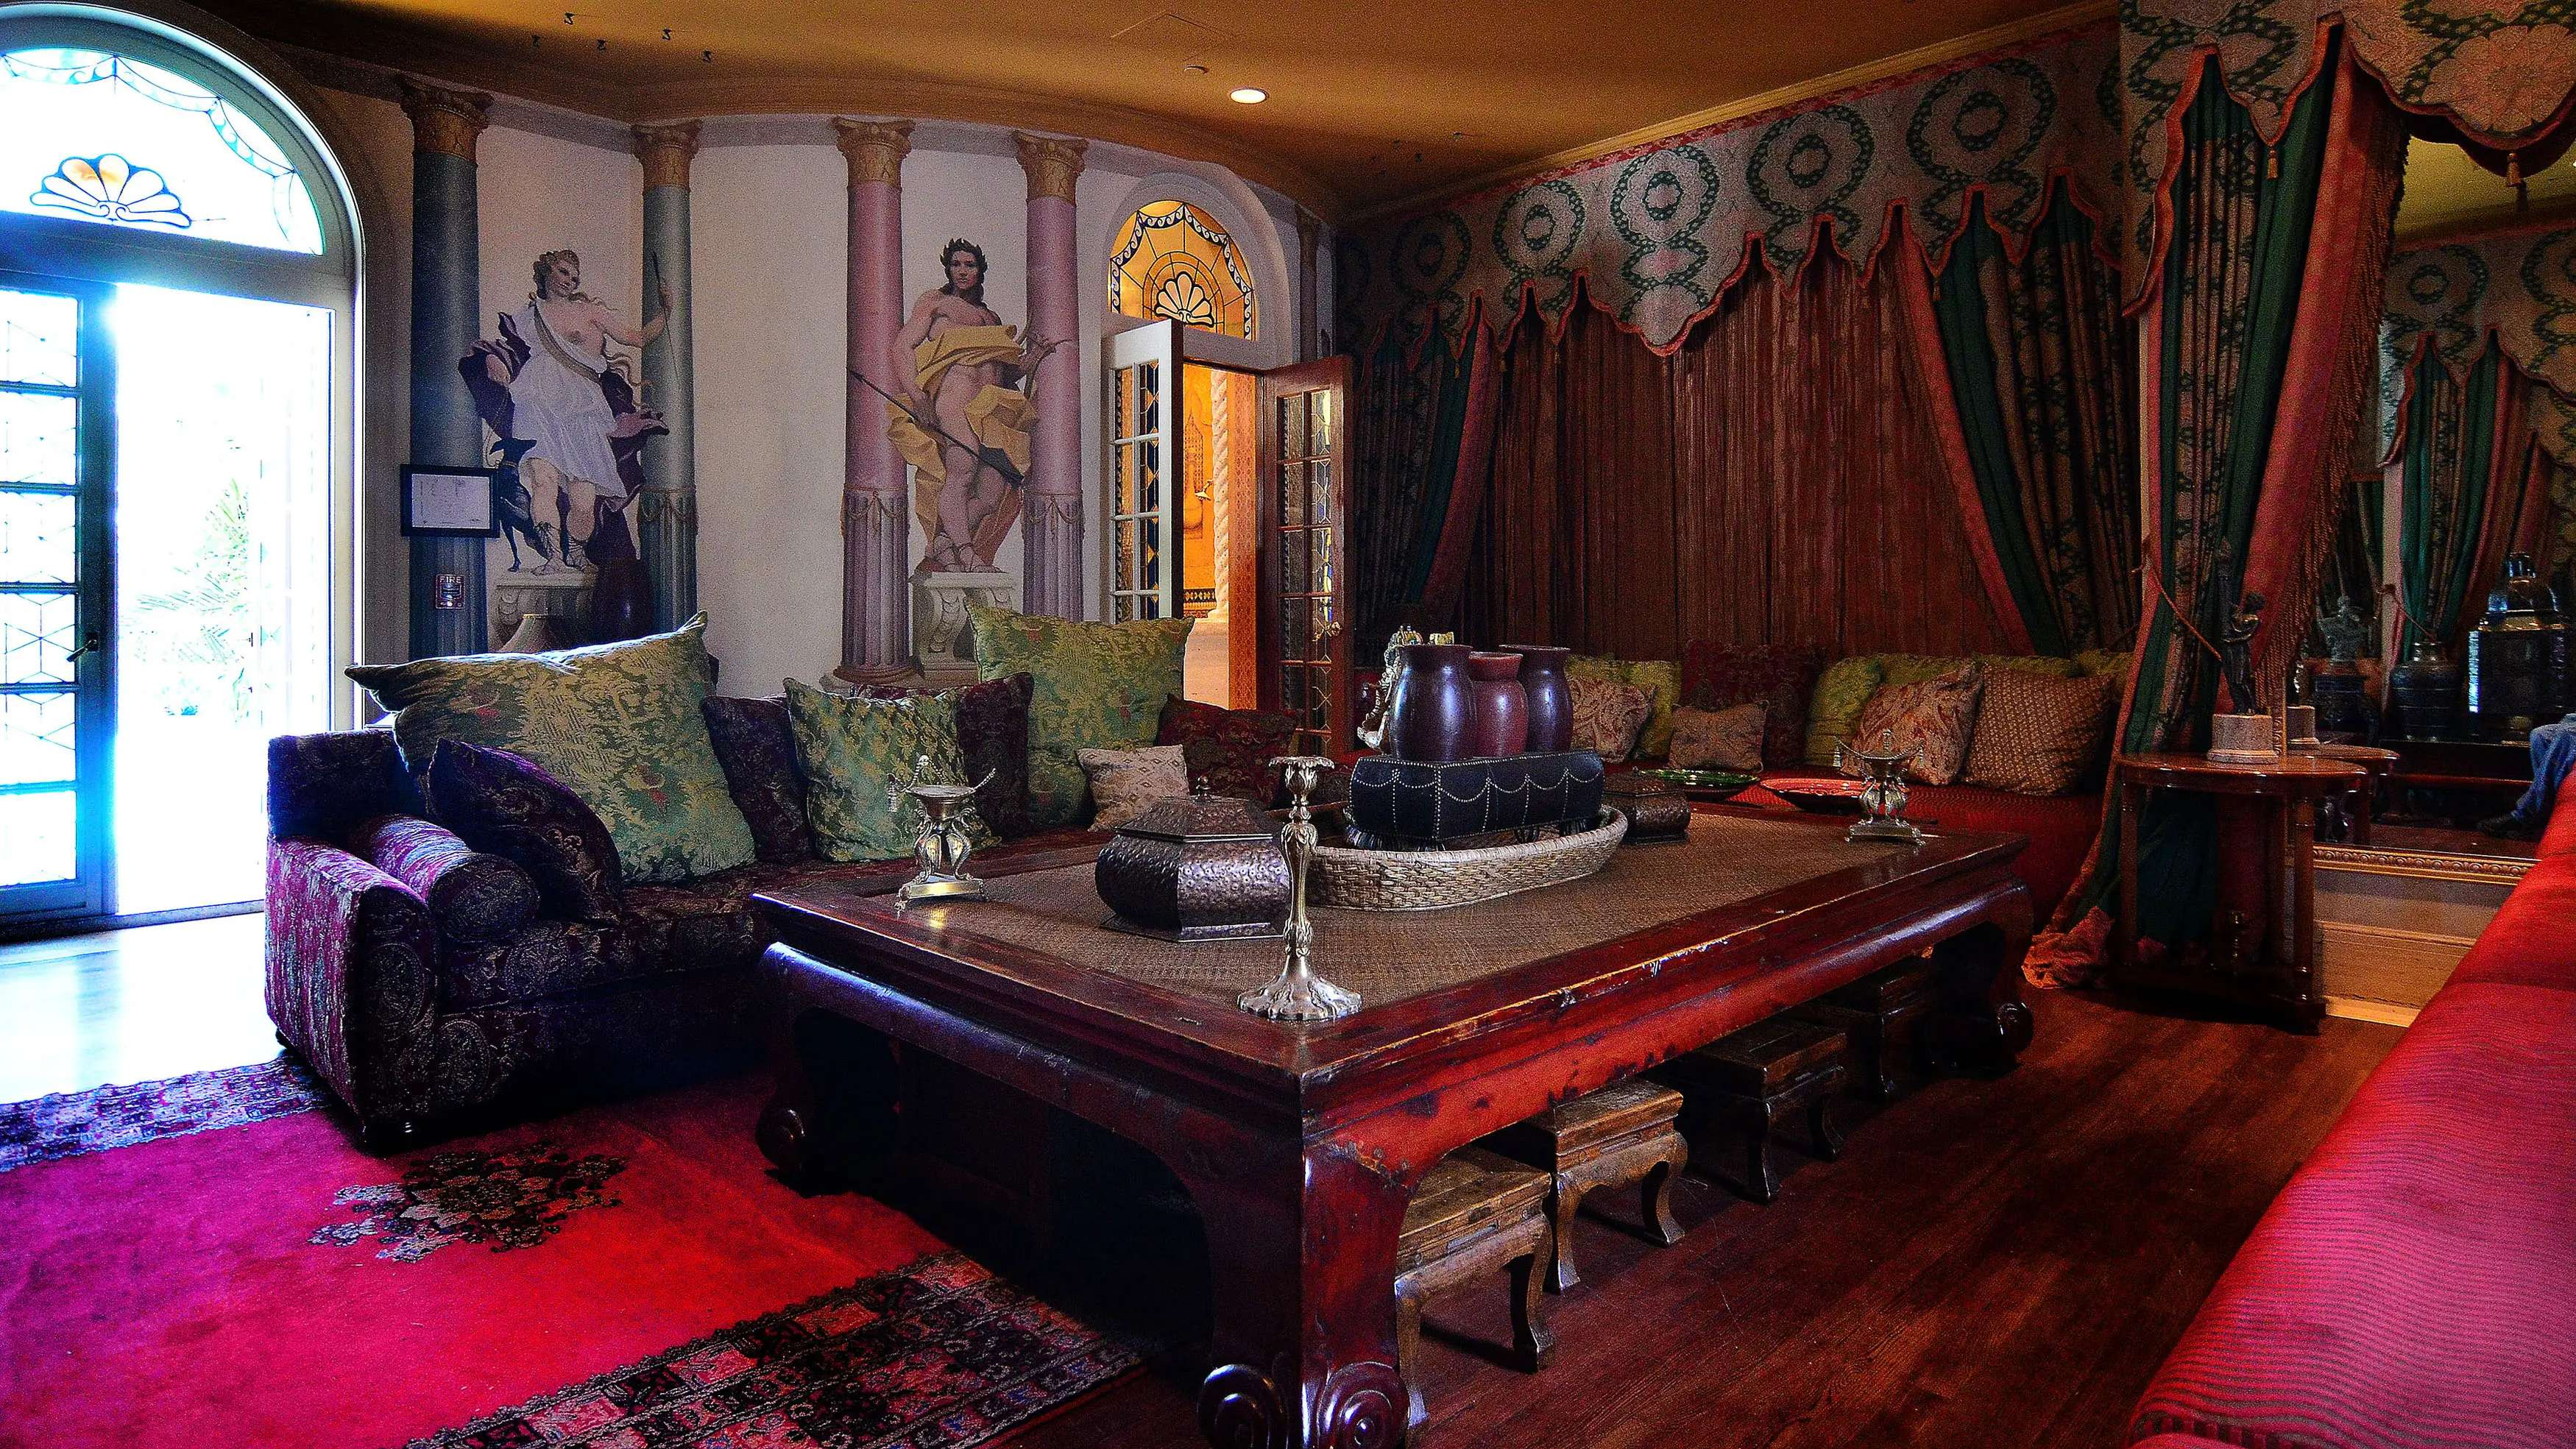 There's even a luxurious hookah lounge inside the mansion.